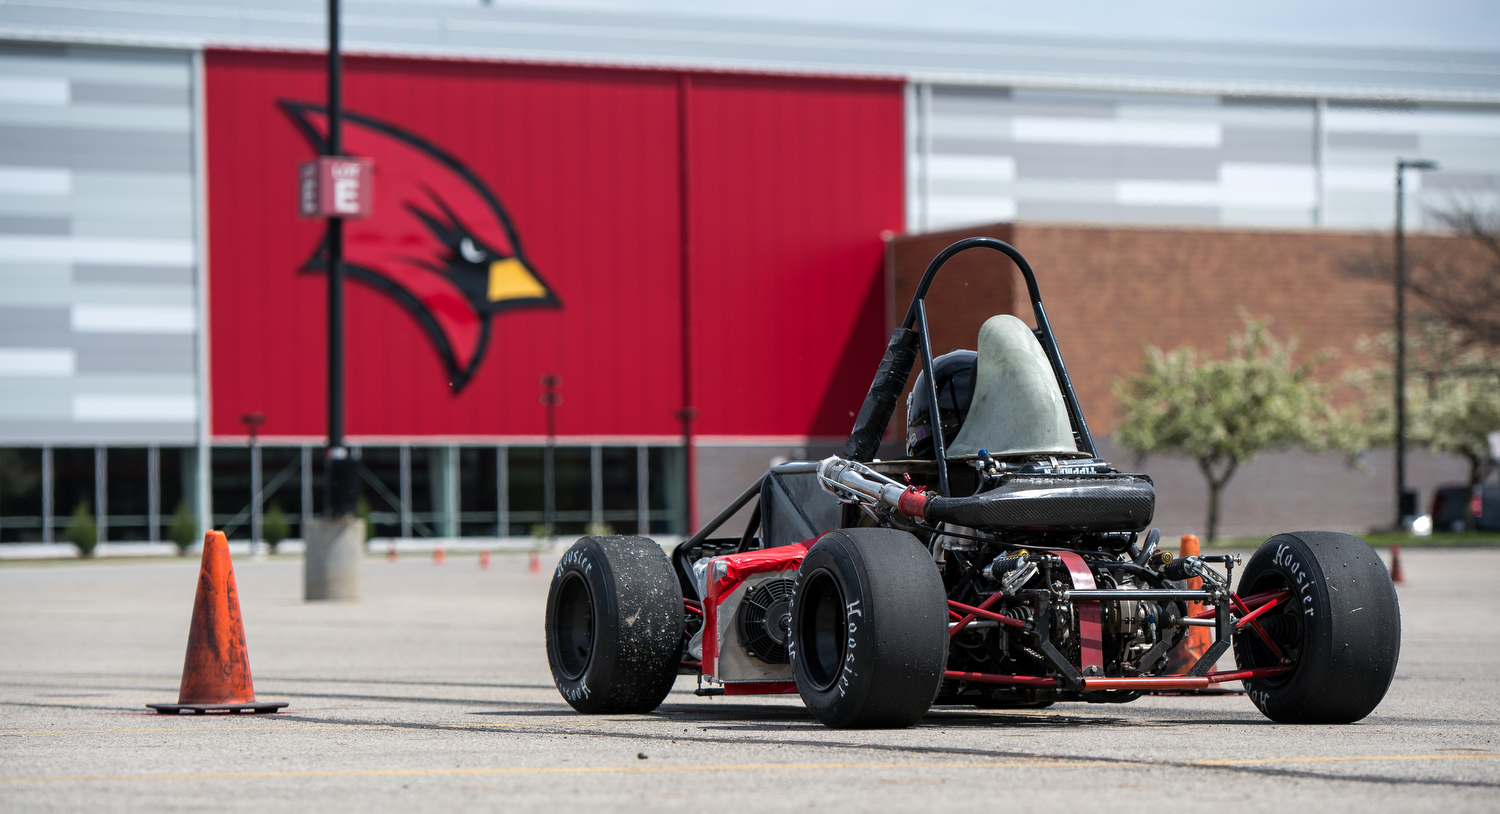 Cardinal Formula Racing team on another successful performance in the annual Formula Society of Automotive Engineers Collegiate Design Series at Michigan International Speedway.